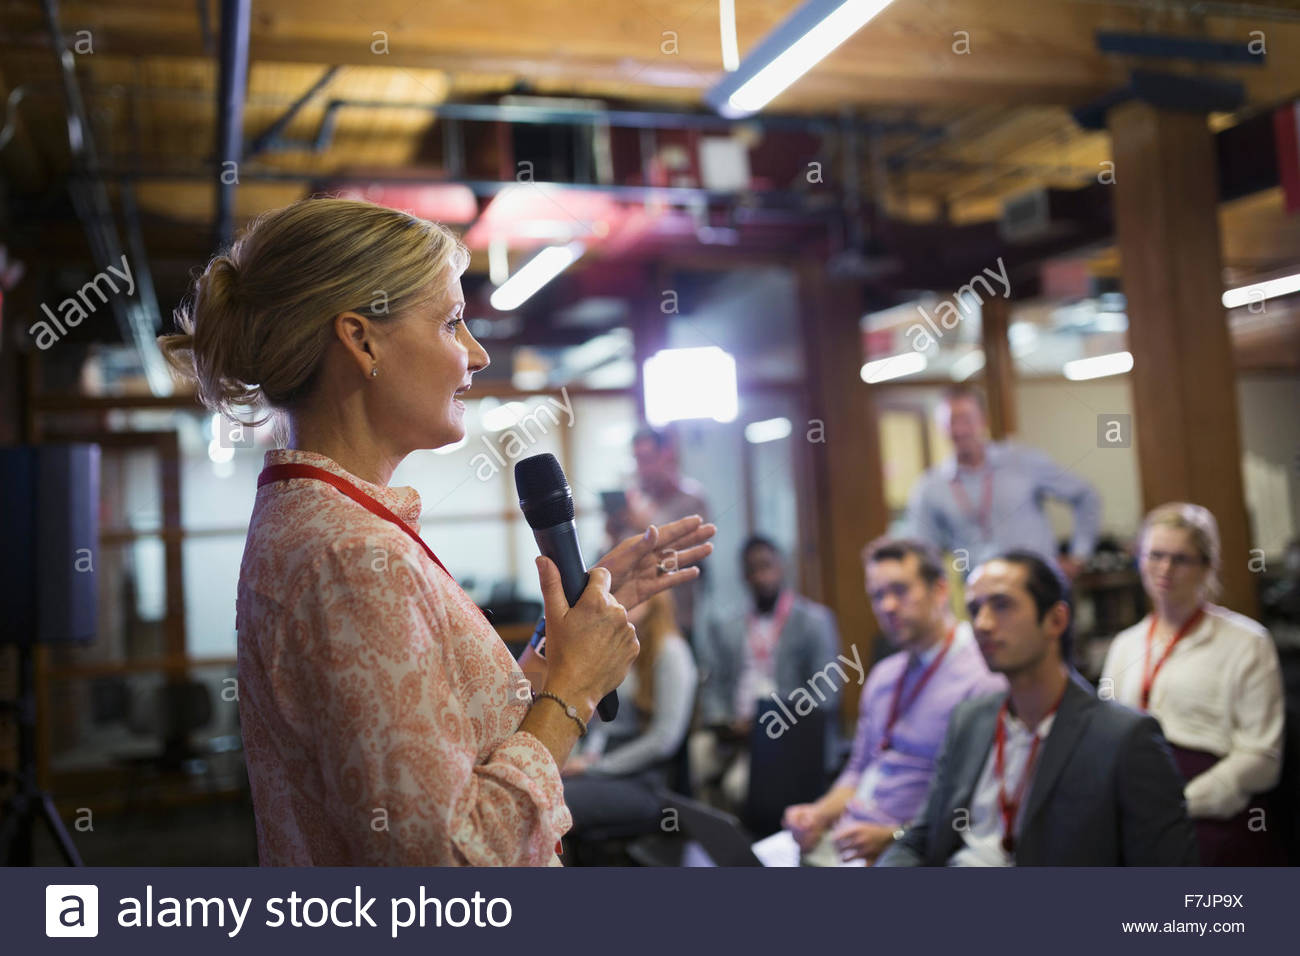 Businesswoman with microphone speaking to conference audience - Stock Image